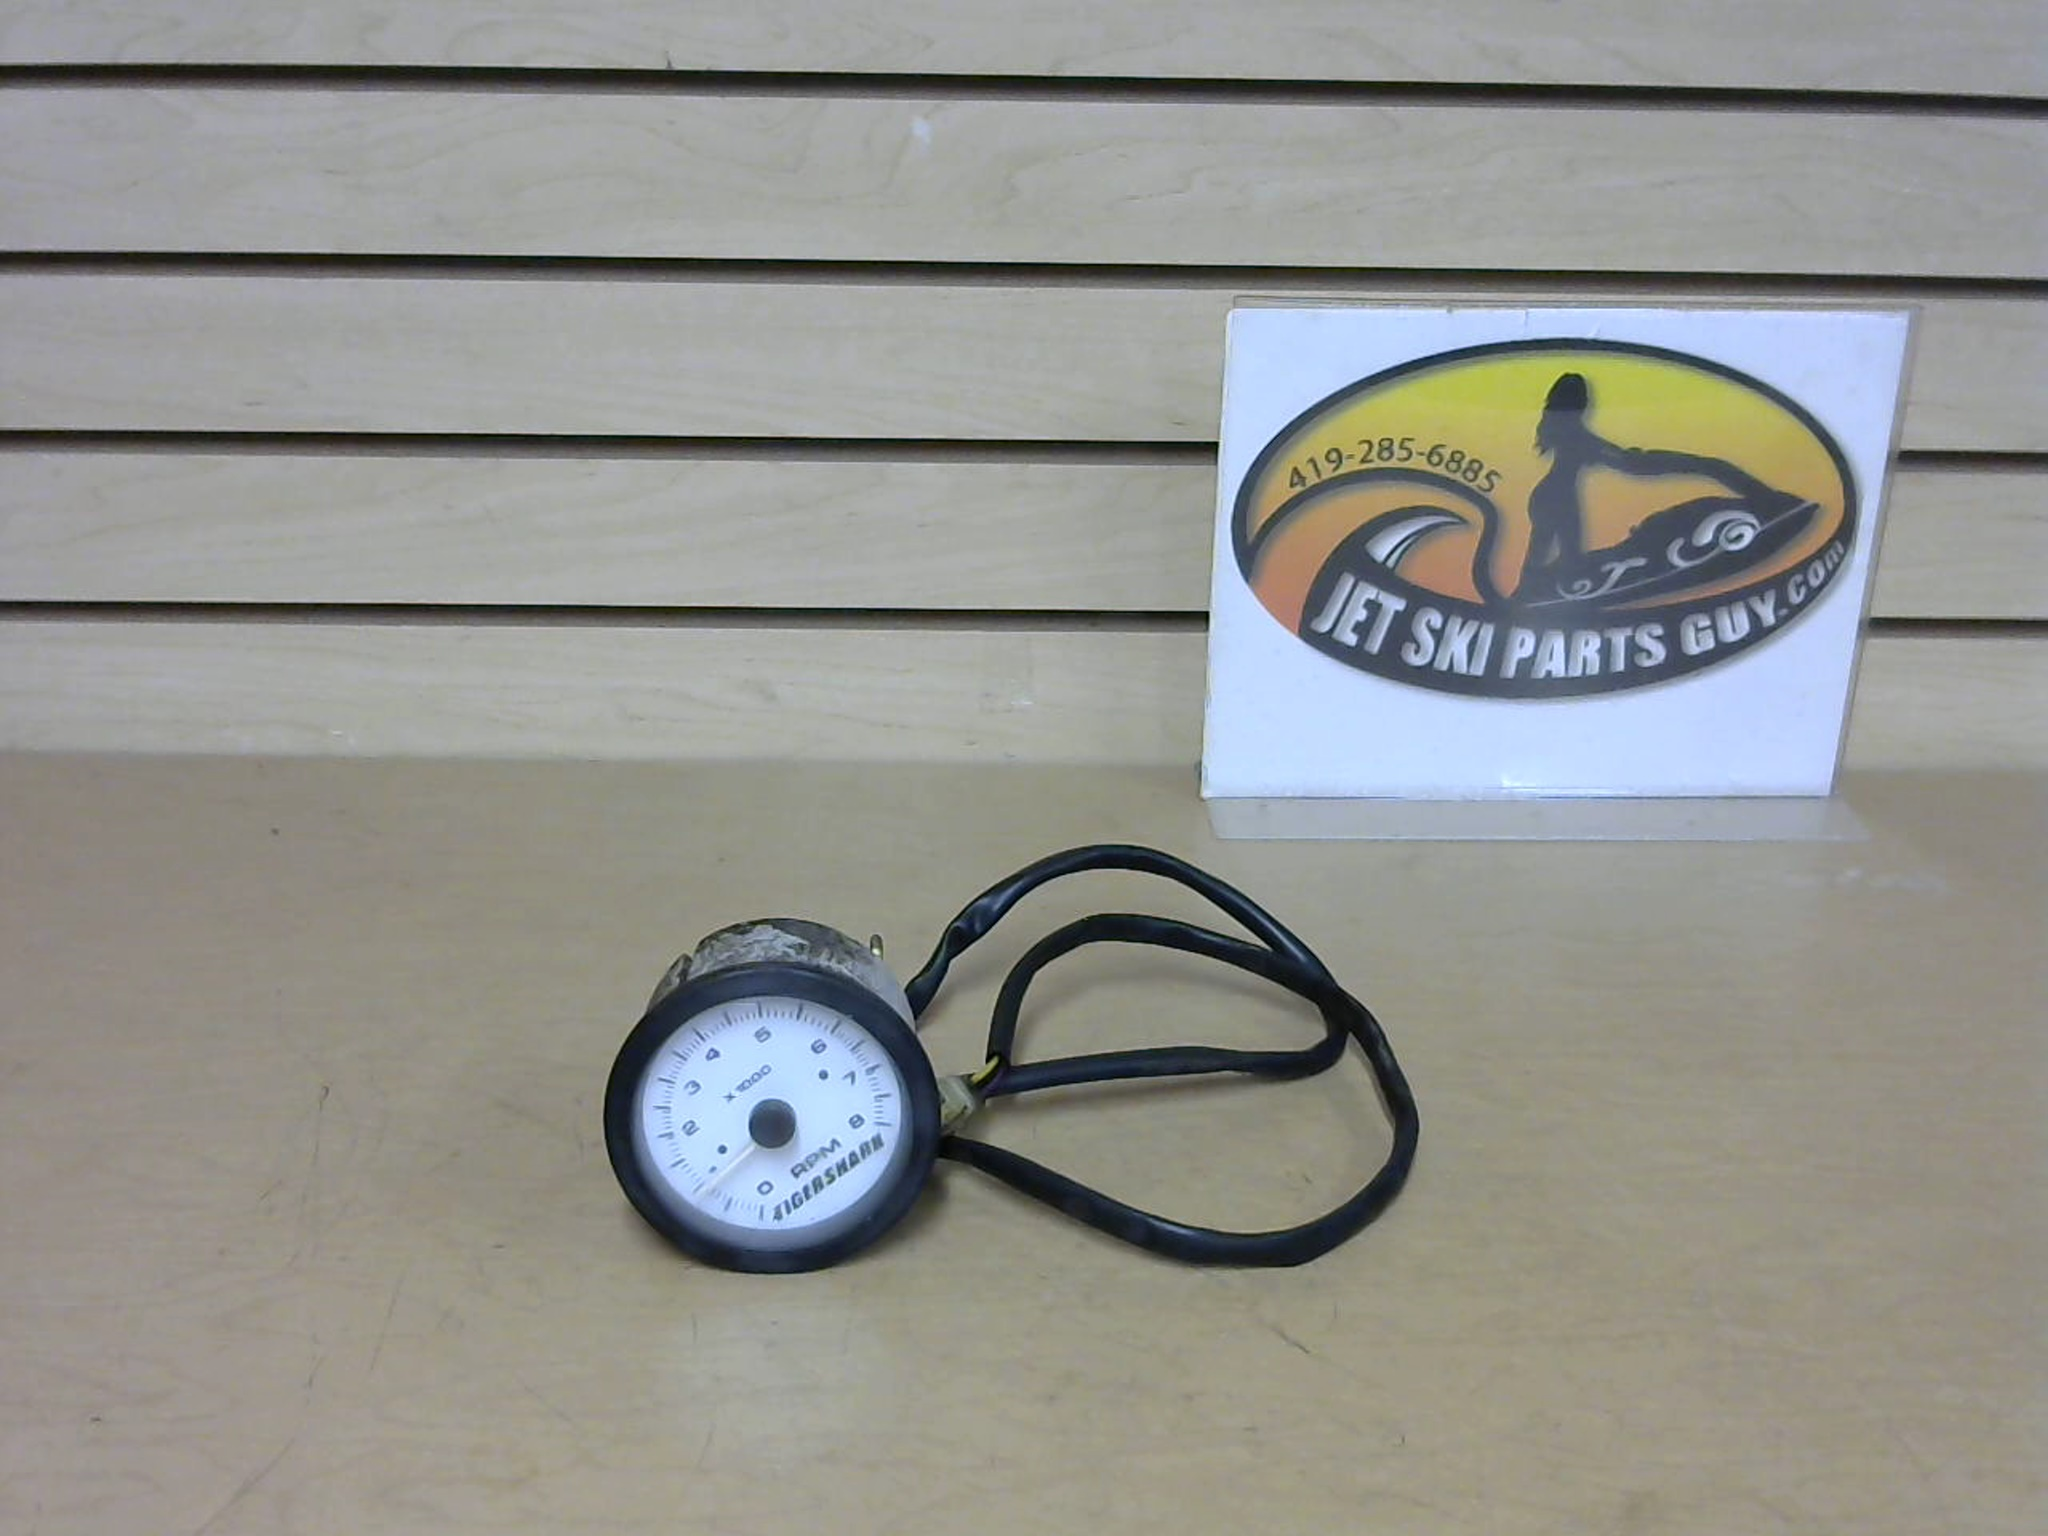 1997 Tigershark Daytona 1000 Tachometer Gauge Instrument 0620-192